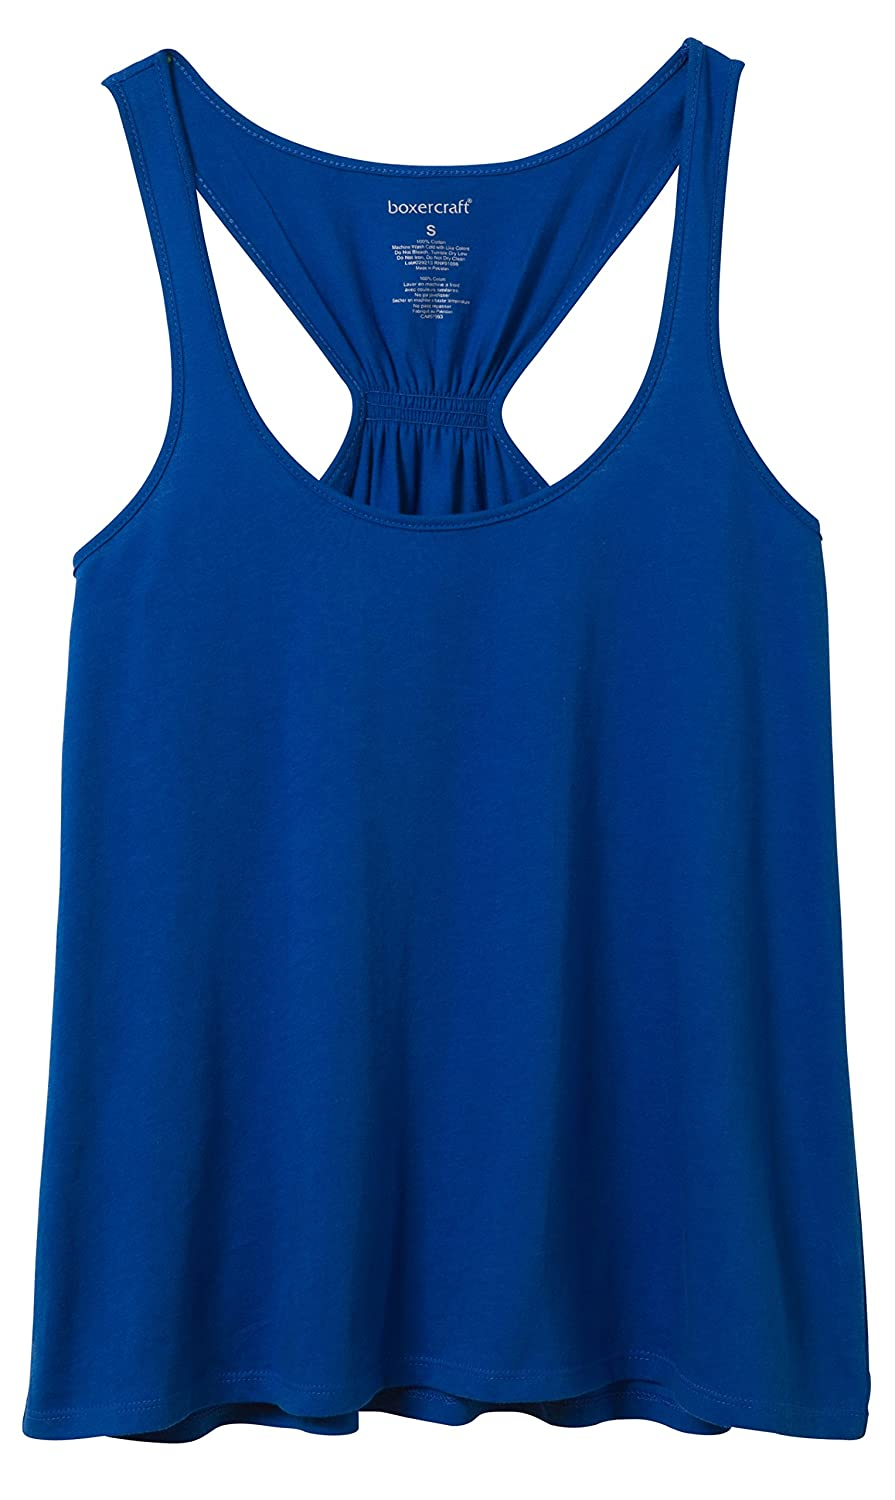 Touch of Europe Youth Solid Royal Blue Racer Back Gathered Flare Tank Top YT87Y